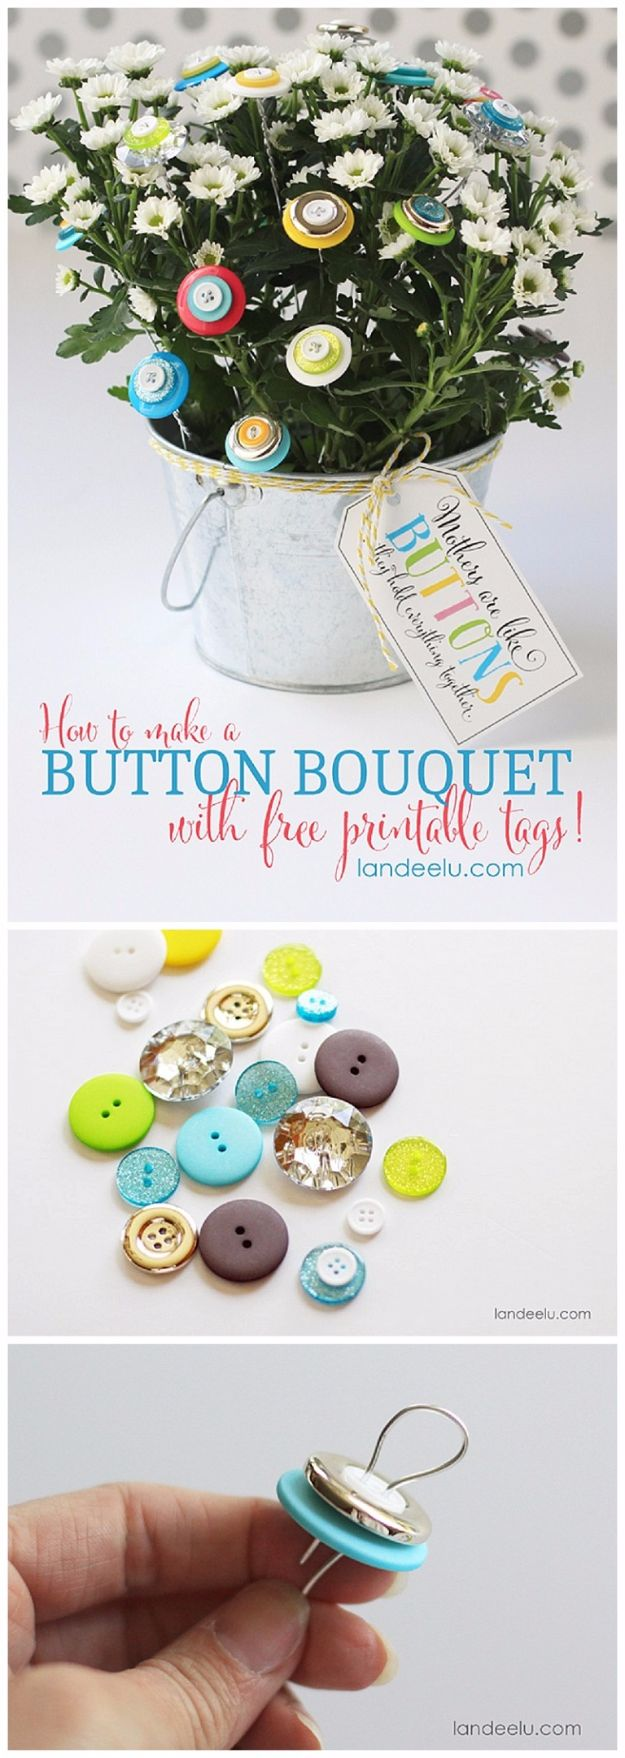 DIY Mothers Day Gift Ideas - Button Bouquet - Homemade Gifts for Moms - Crafts and Do It Yourself Home Decor, Accessories and Fashion To Make For Mom - Mothers Love Handmade Presents on Mother's Day - DIY Projects and Crafts by DIY JOY http://diyjoy.com/diy-mothers-day-gifts